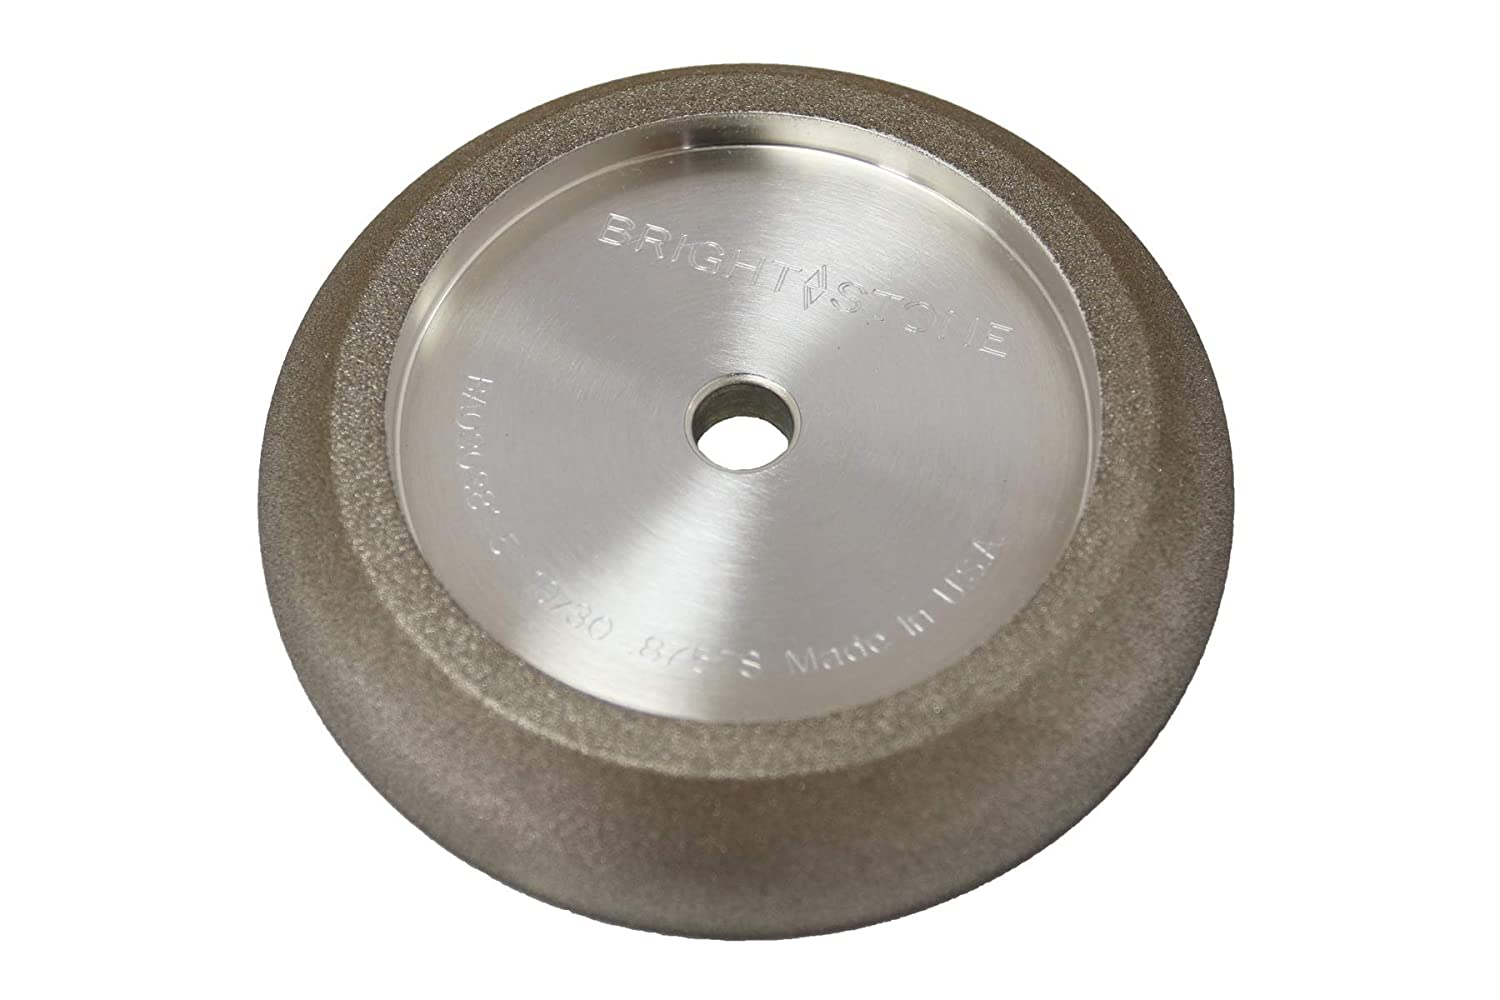 Wood-Mizer 5 CBN Grinding Wheel 7//8 Tooth Spacing 10//30 Angle